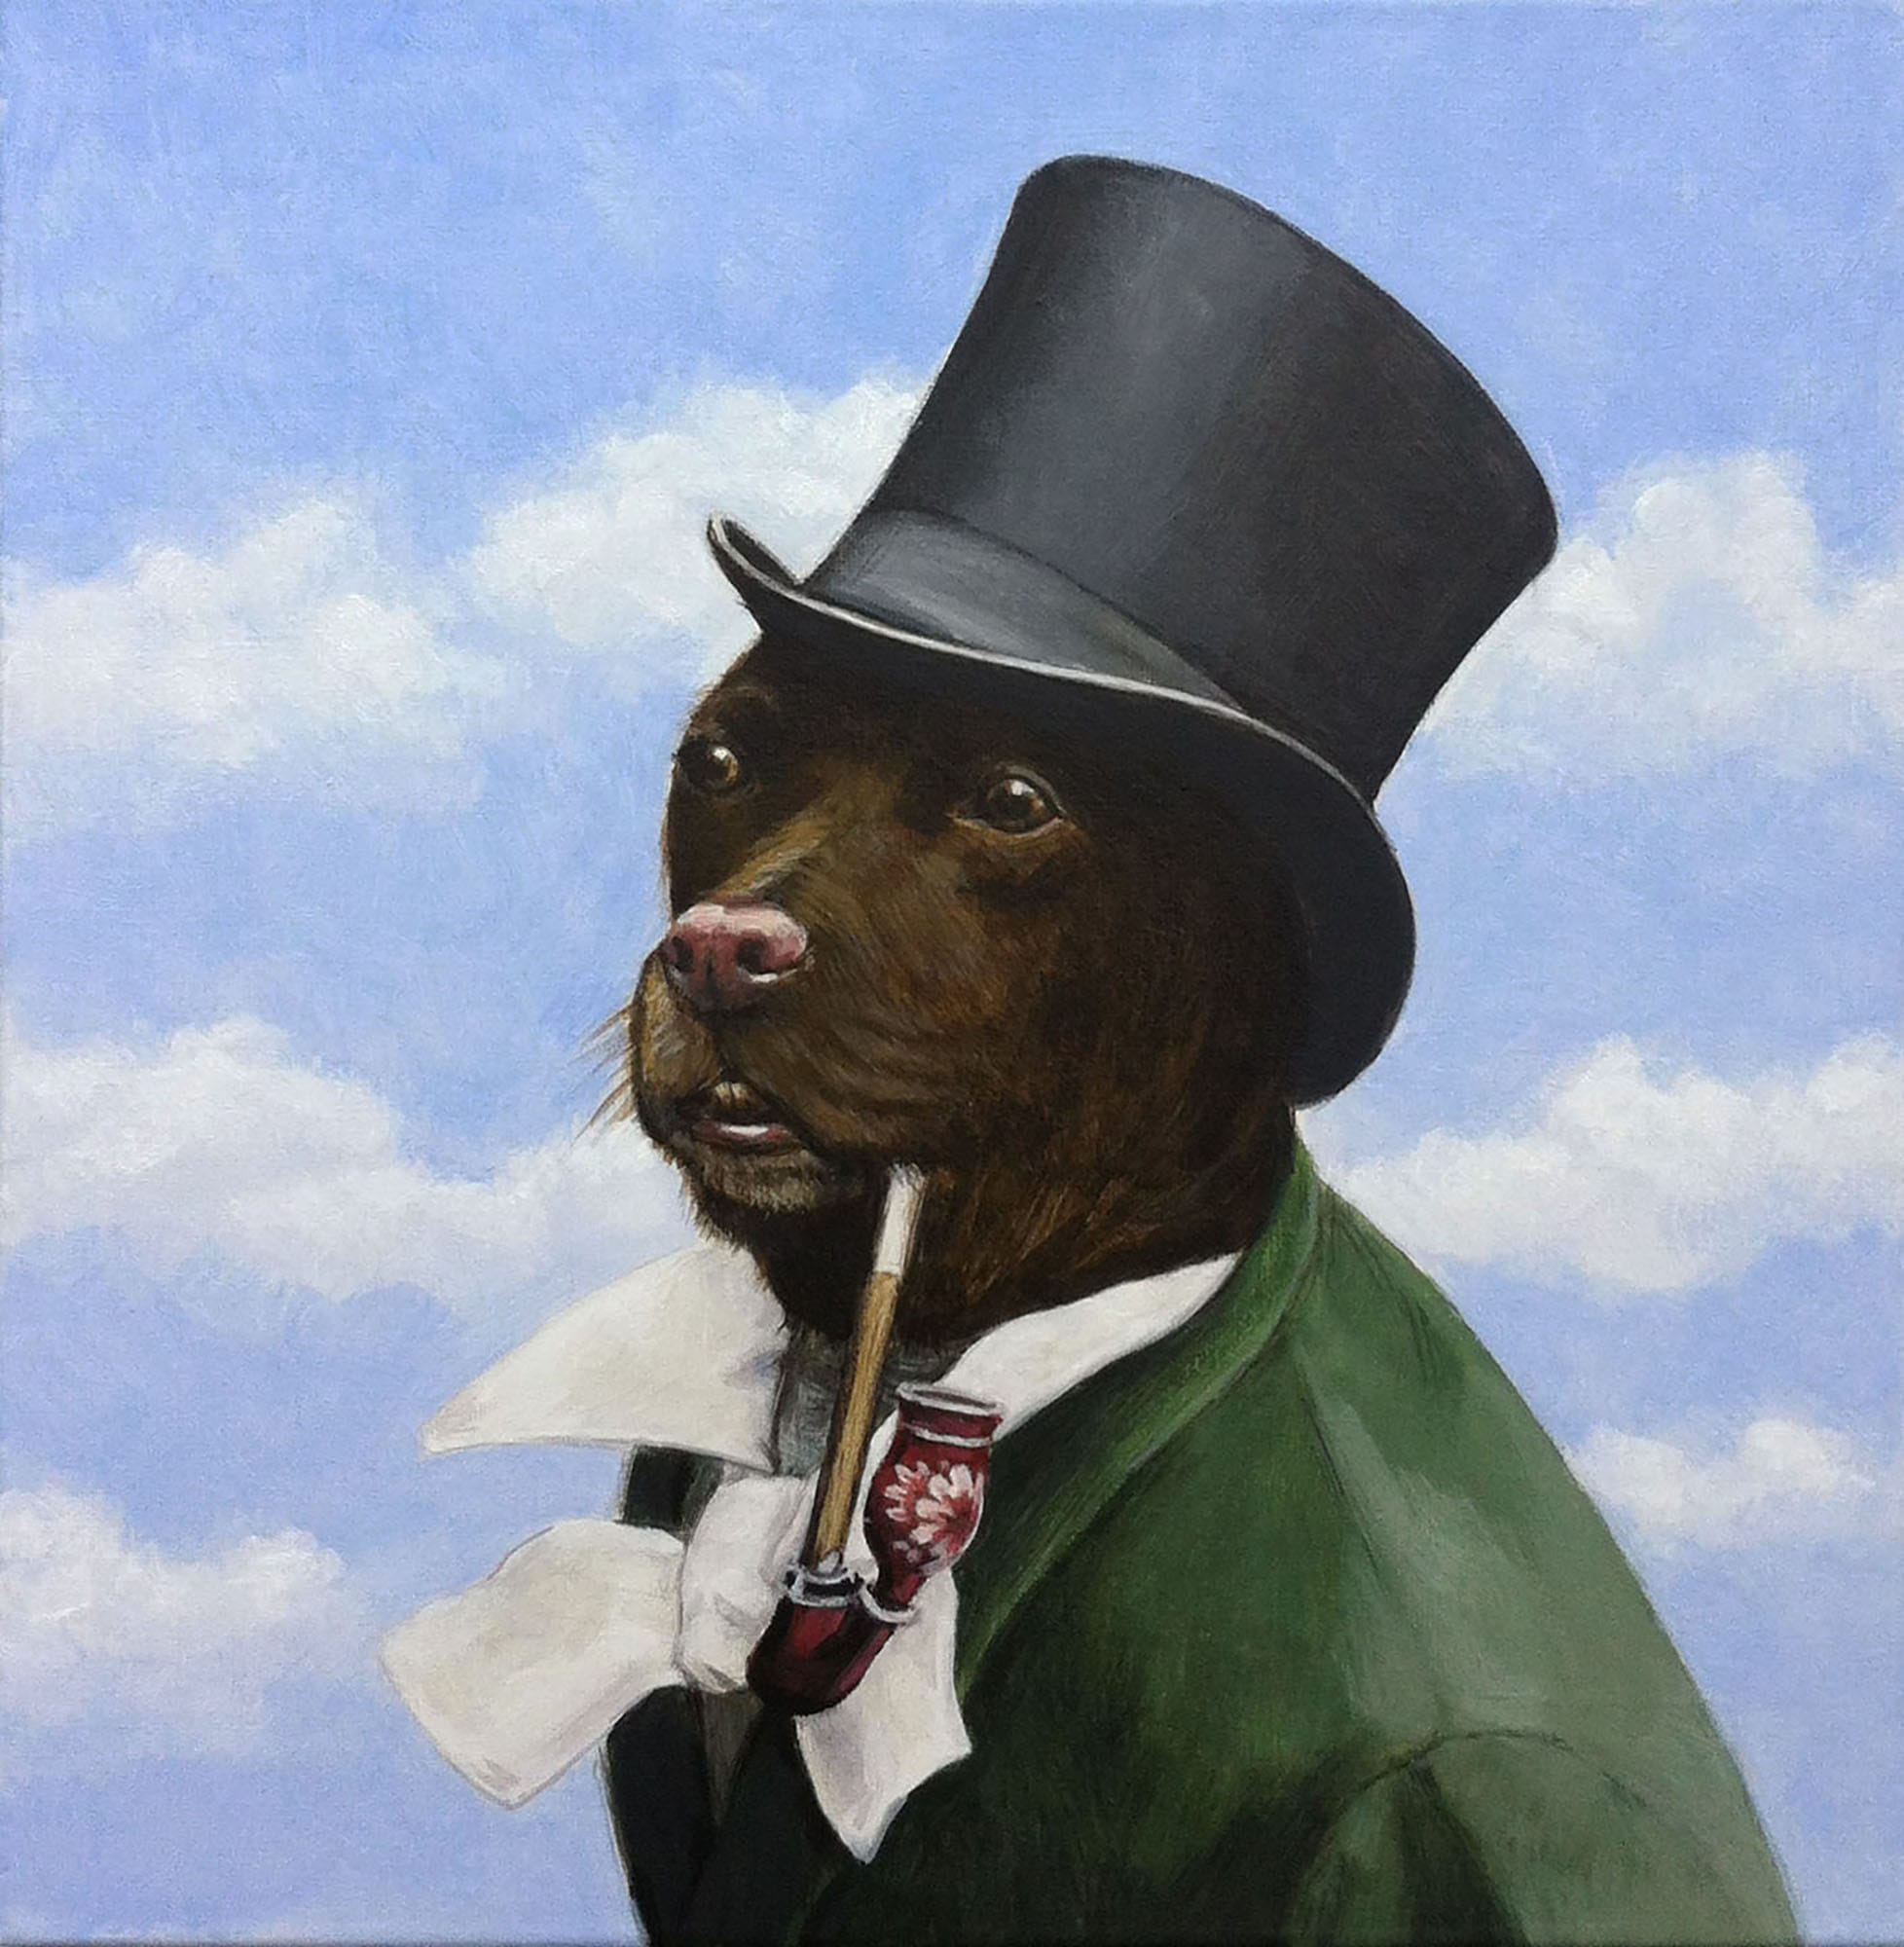 Dog with pipe and top hat | © Sarah Morrissette